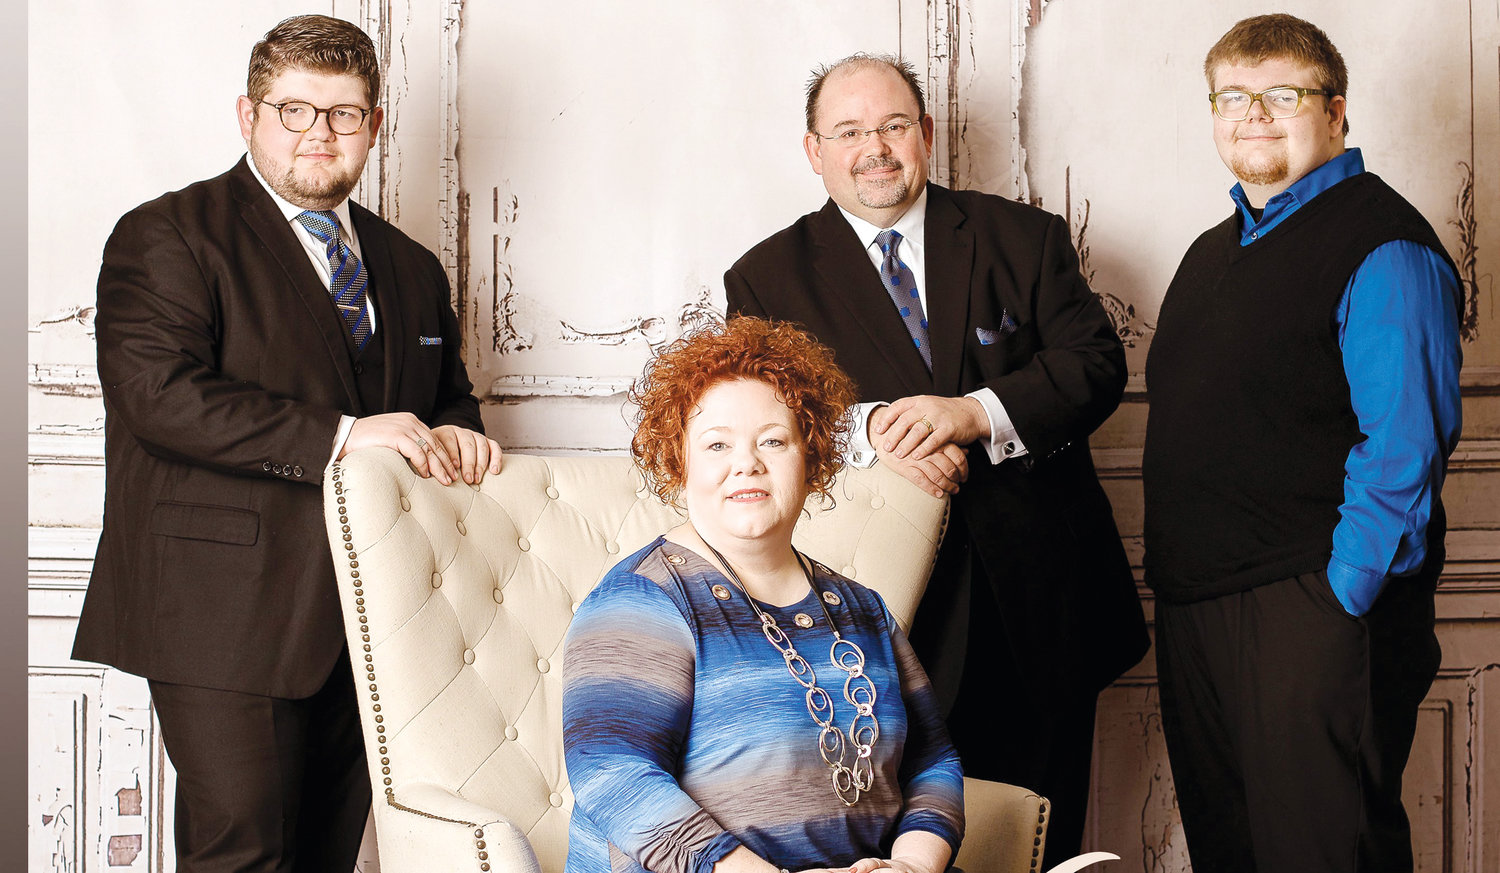 Pictured is The Ollis Family. They will be featured in concert July 21 at Piney Grove Chapel Baptist Church, Angier.